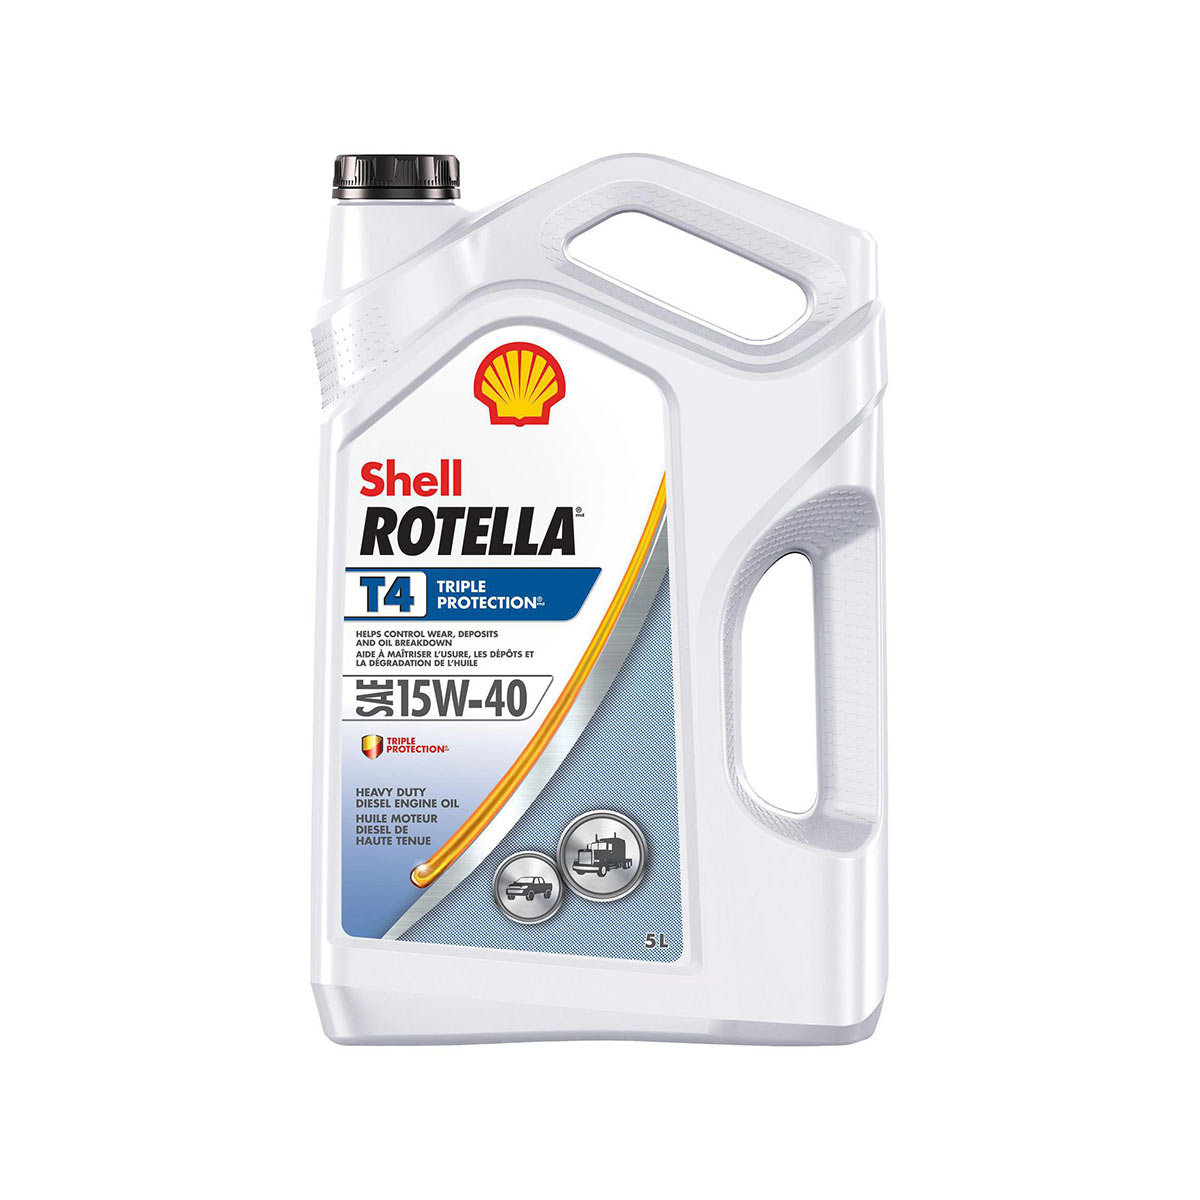 Shell Rotella T4 Triple Protection 15W-40 - 5 L